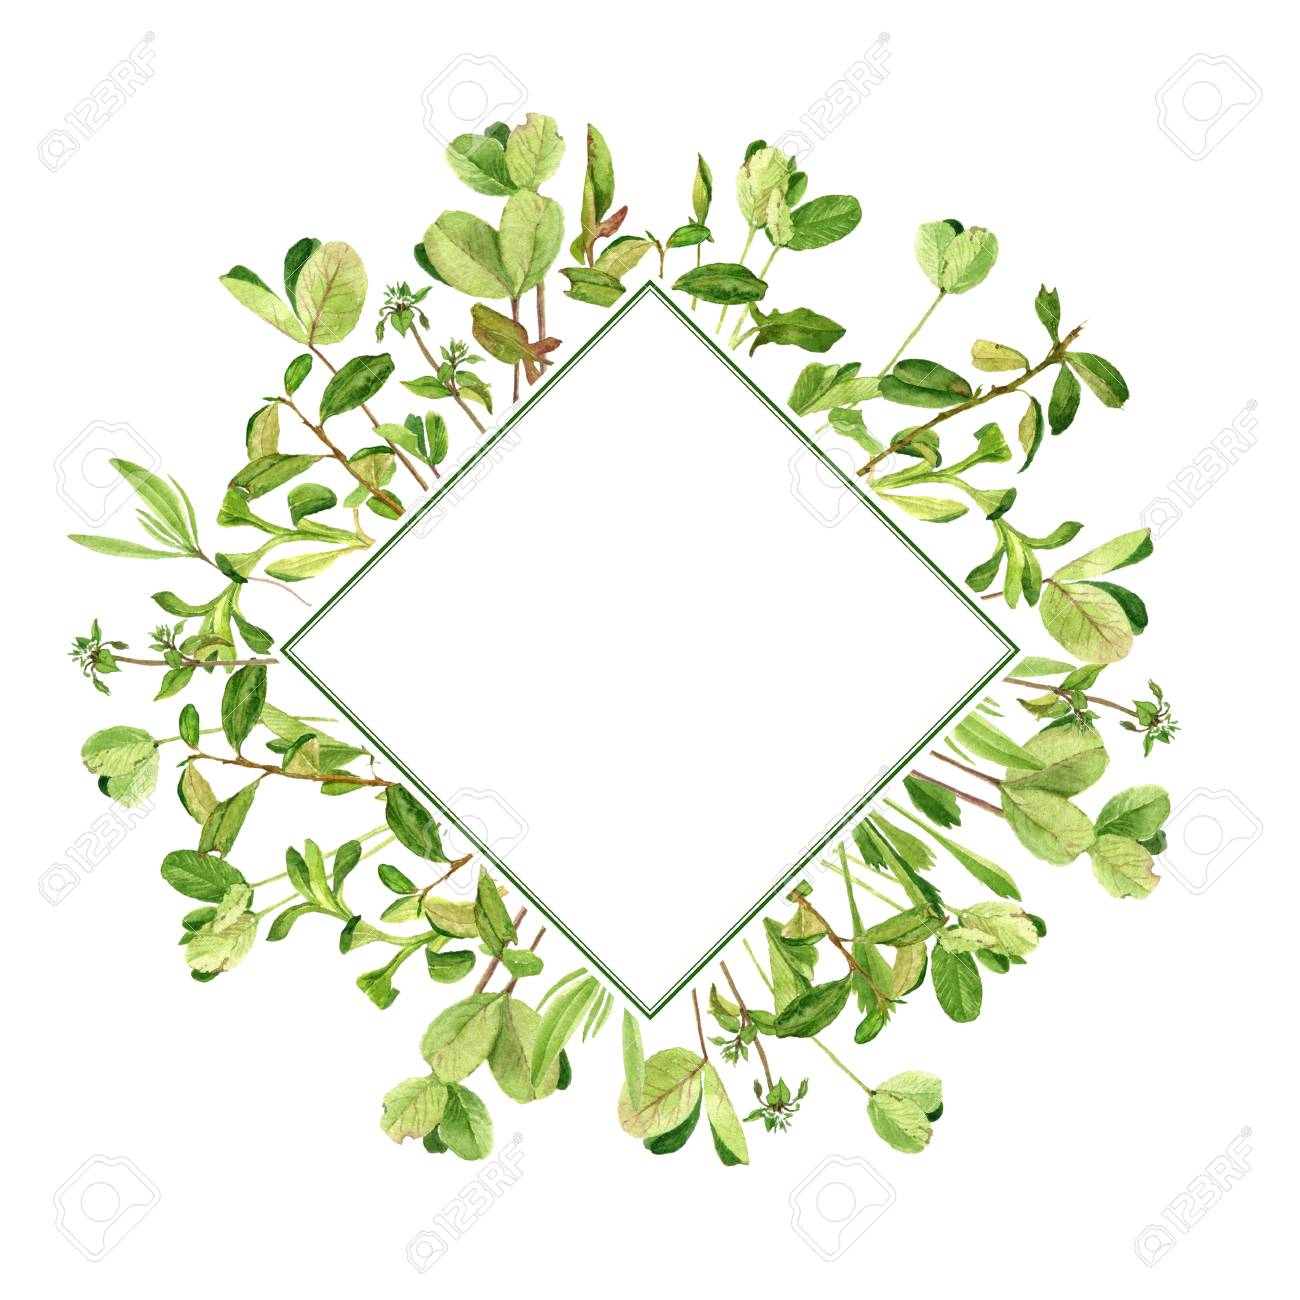 template with drawing clover leaves stock photo picture and royalty